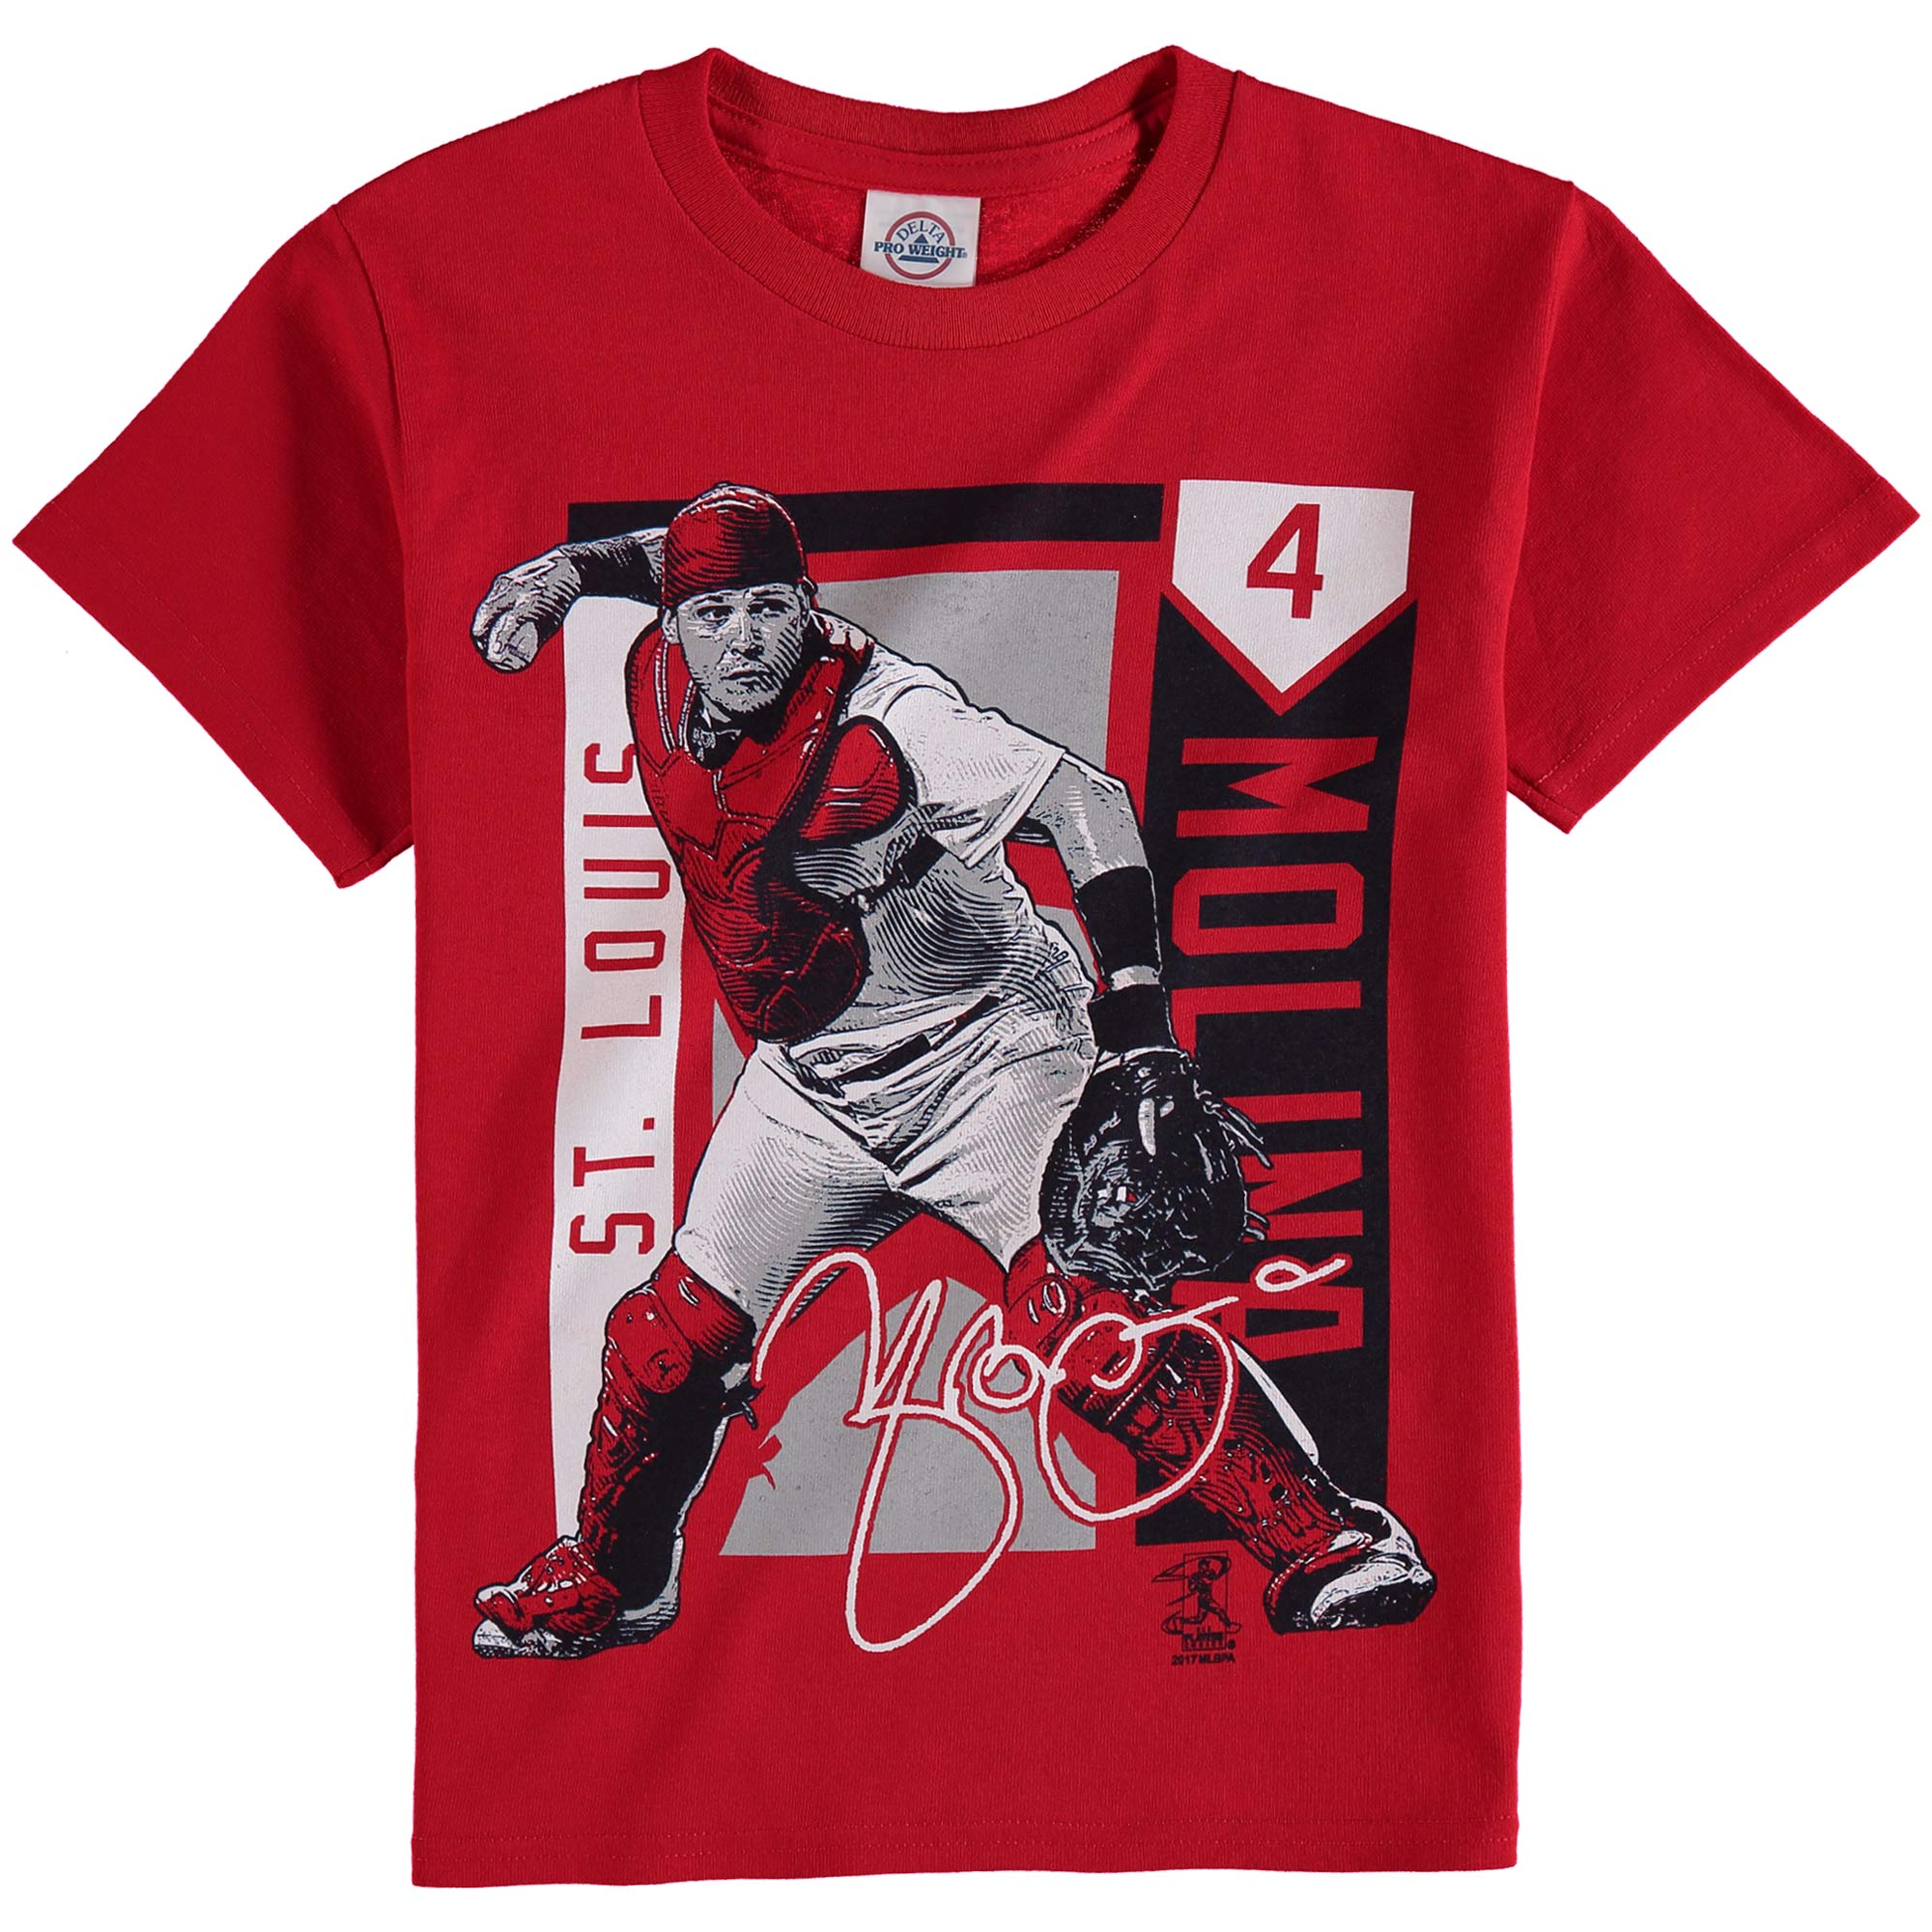 Yadier Molina St. Louis Cardinals Youth Color Block Player Series Graphic T-Shirt - Red